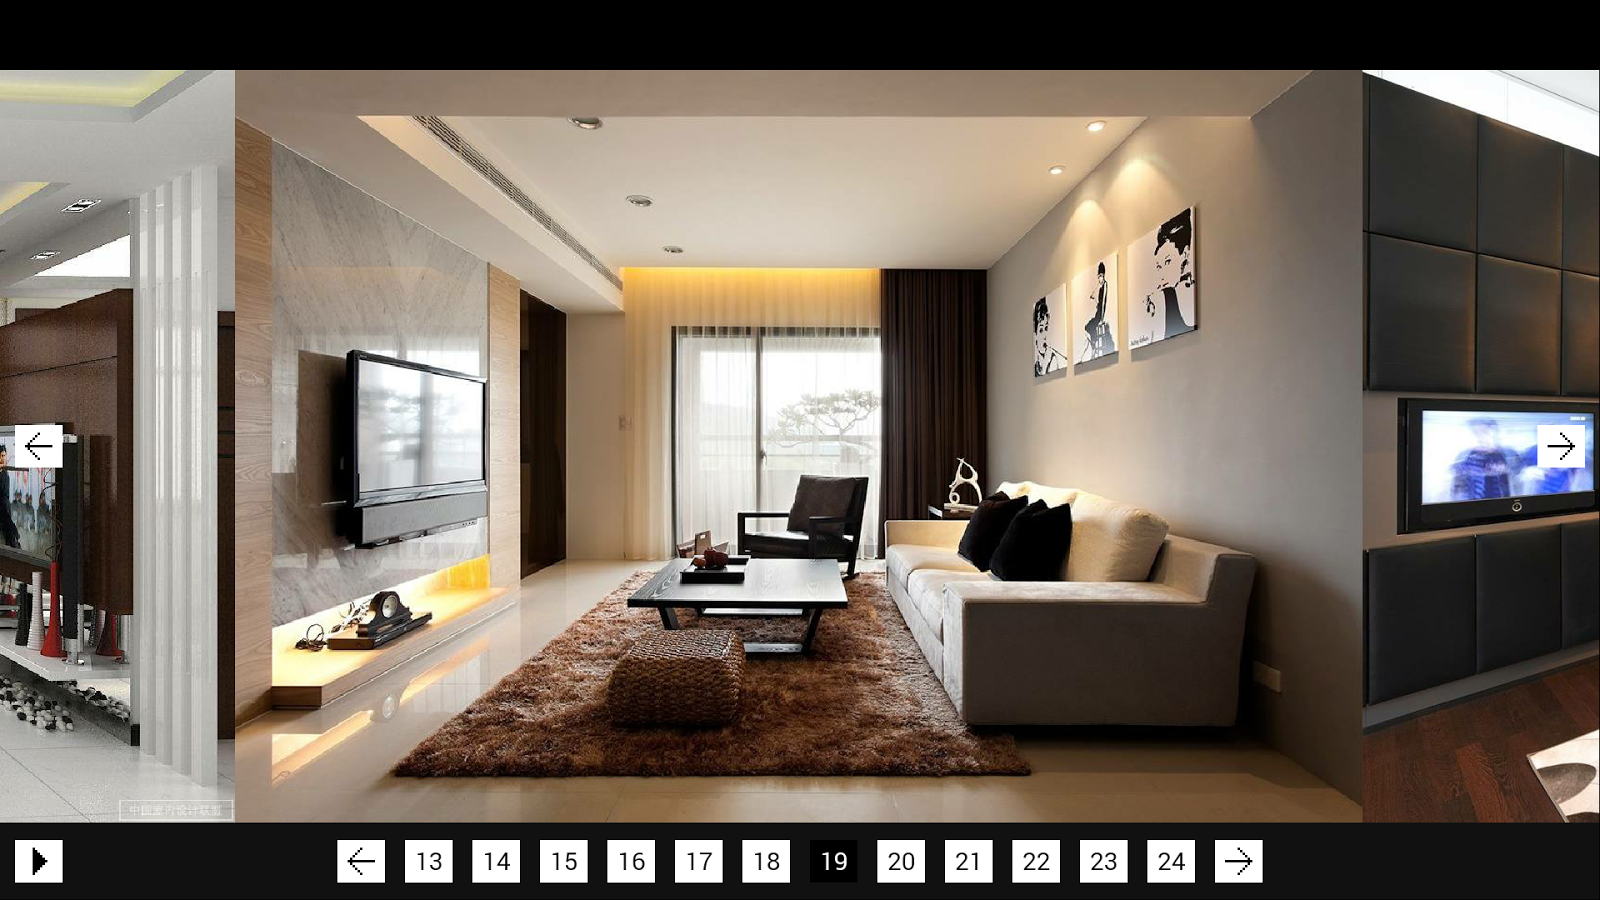 Home interior design android apps on google play - Home designs interior ...